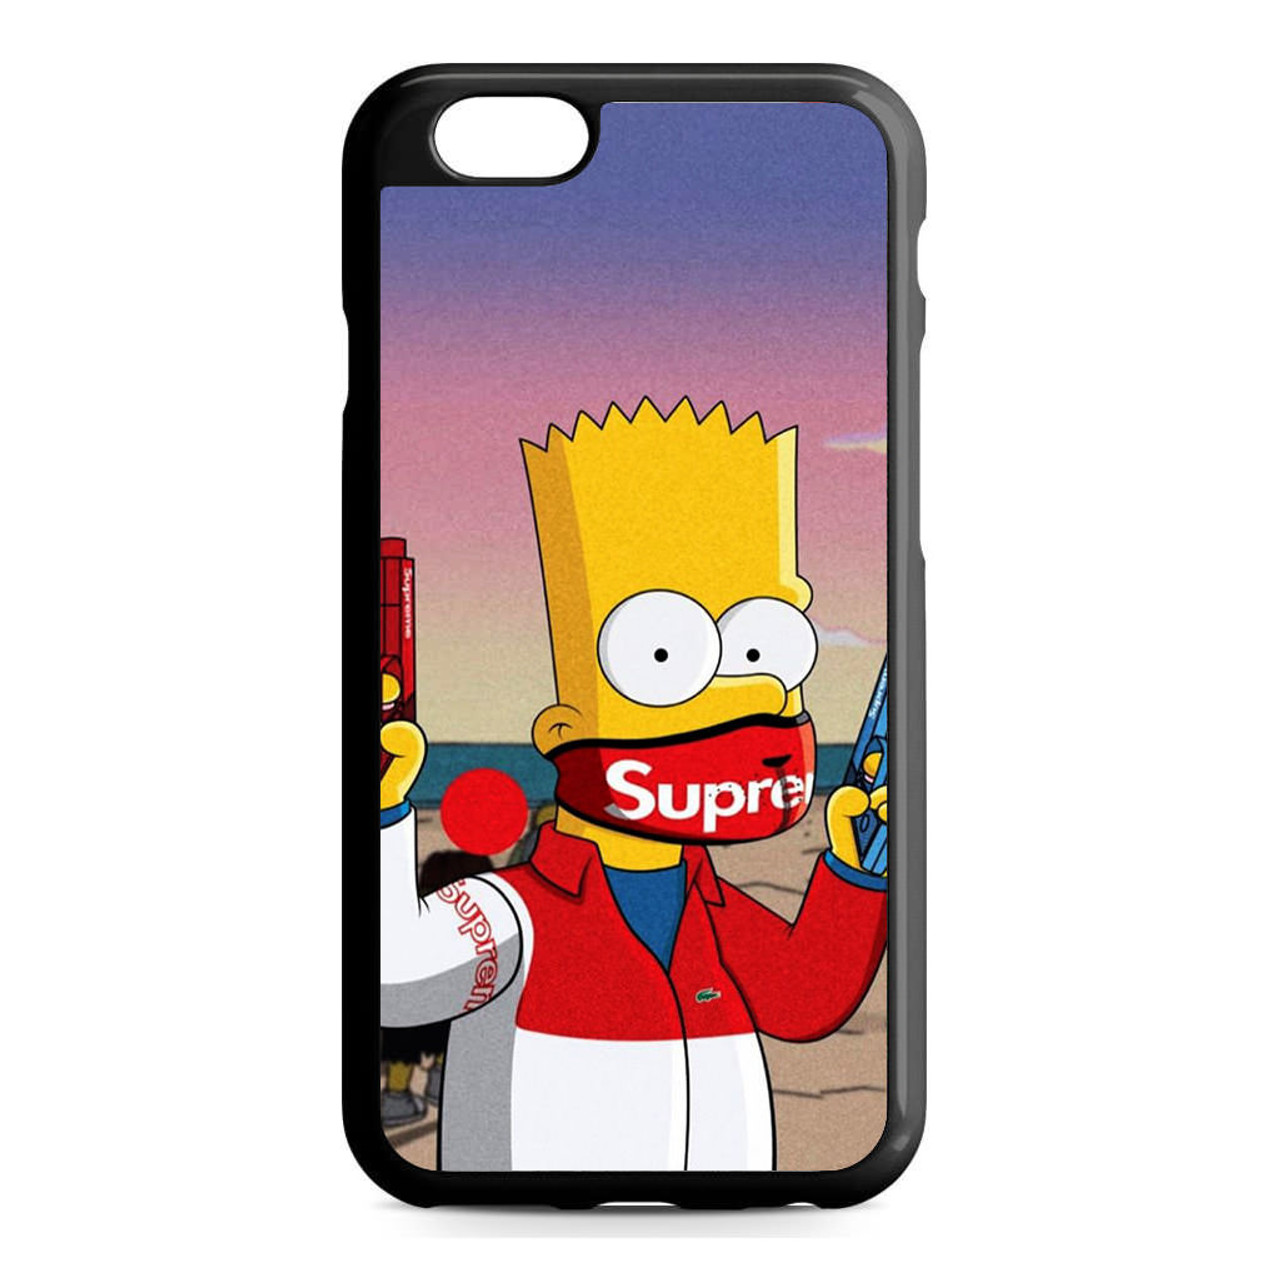 newest ef3e7 0e684 Bart Supreme iPhone 6/6S Case